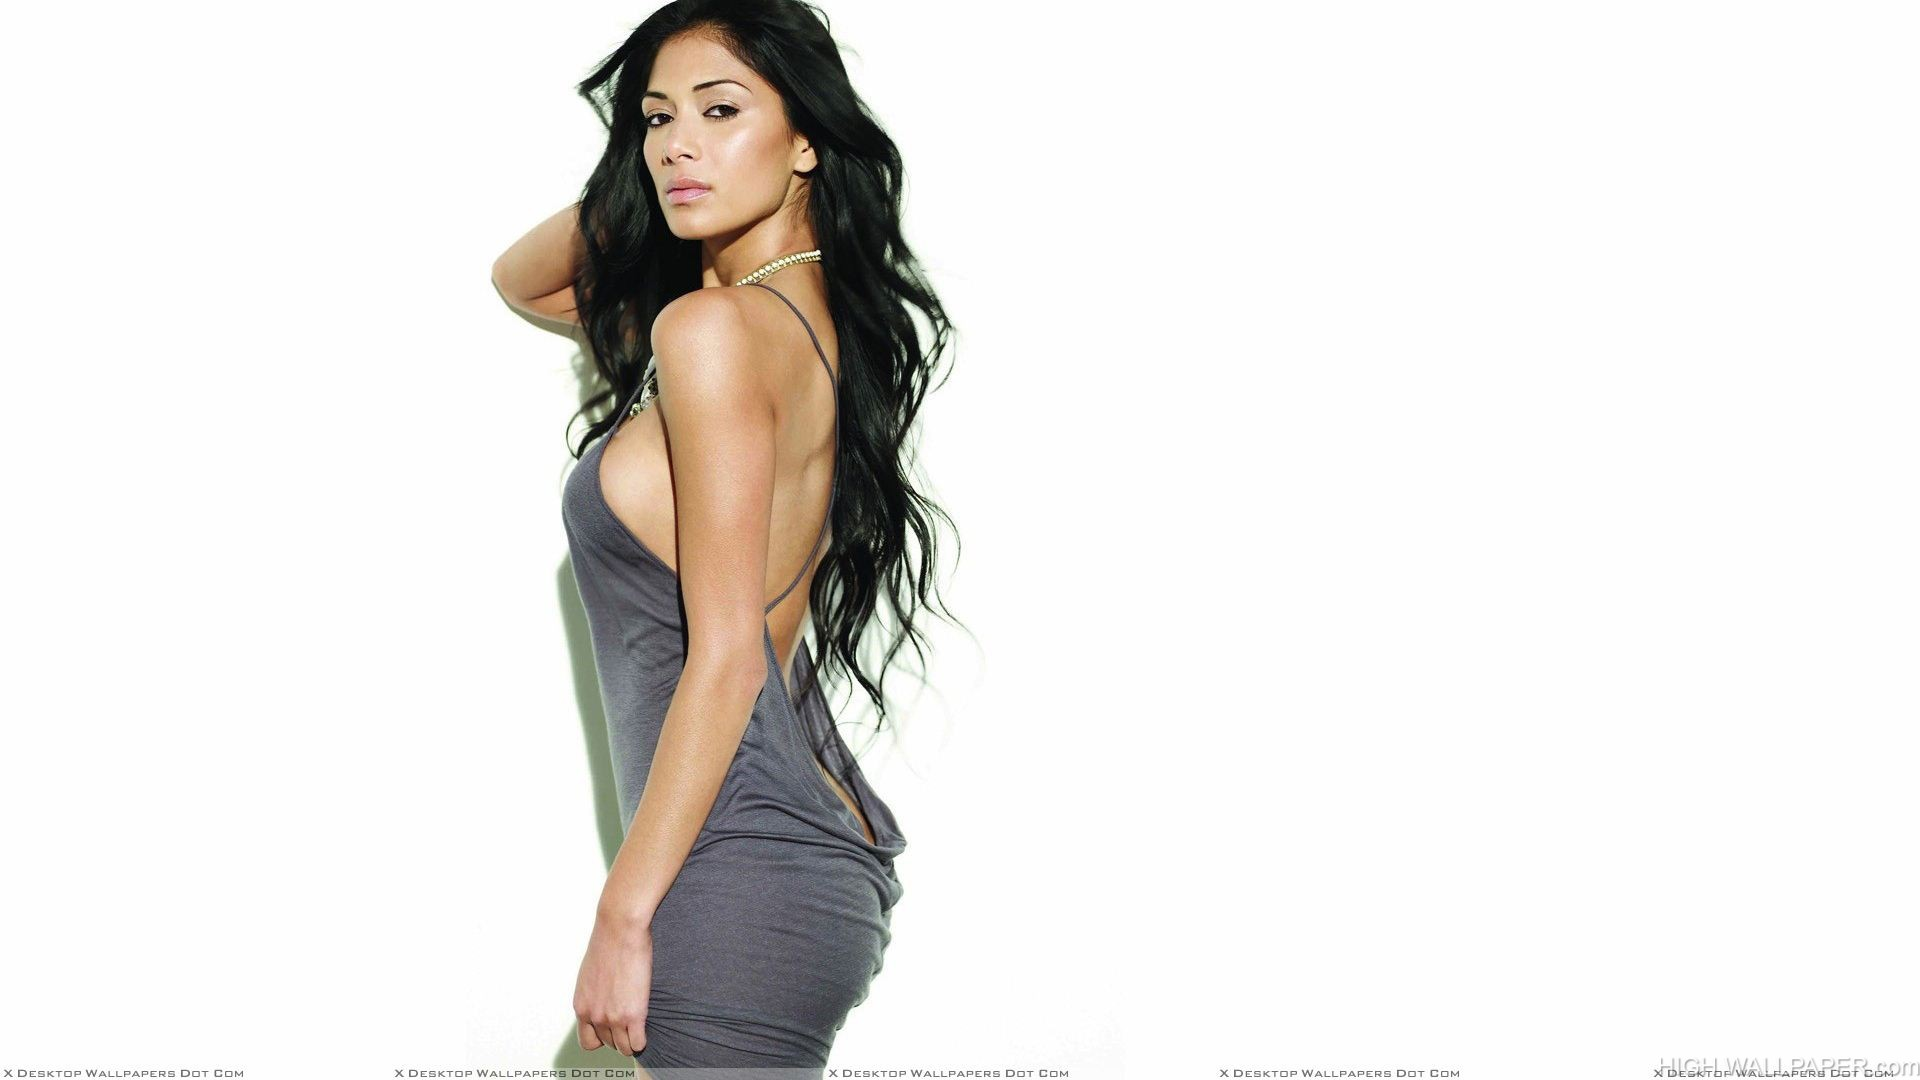 Nicole Scherzinger Looking Sexy In Grey Dress Side Pose Photoshoot